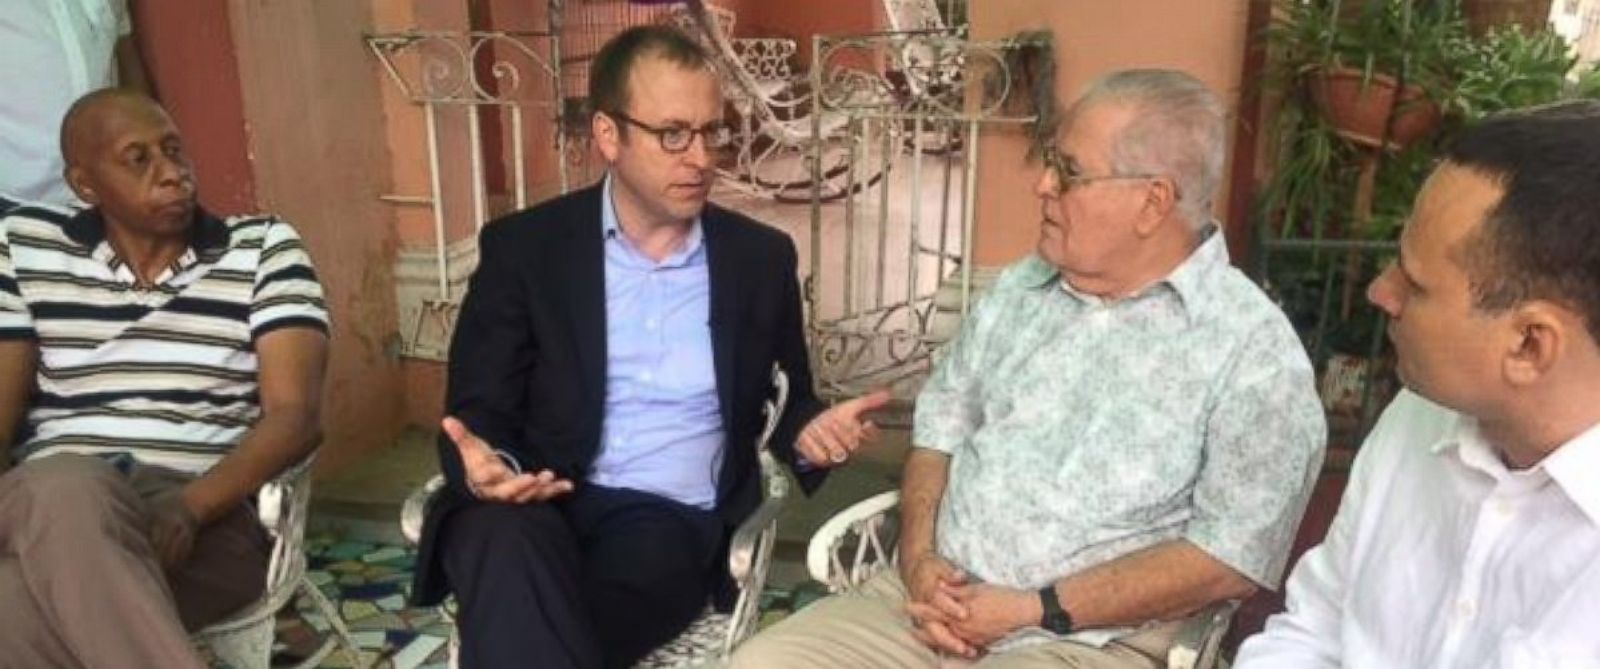 PHOTO: ABC News Chief White House correspondent Jonathan Karl interviews three prominent Cuban rights activists during President Obamas trip to Cuba.